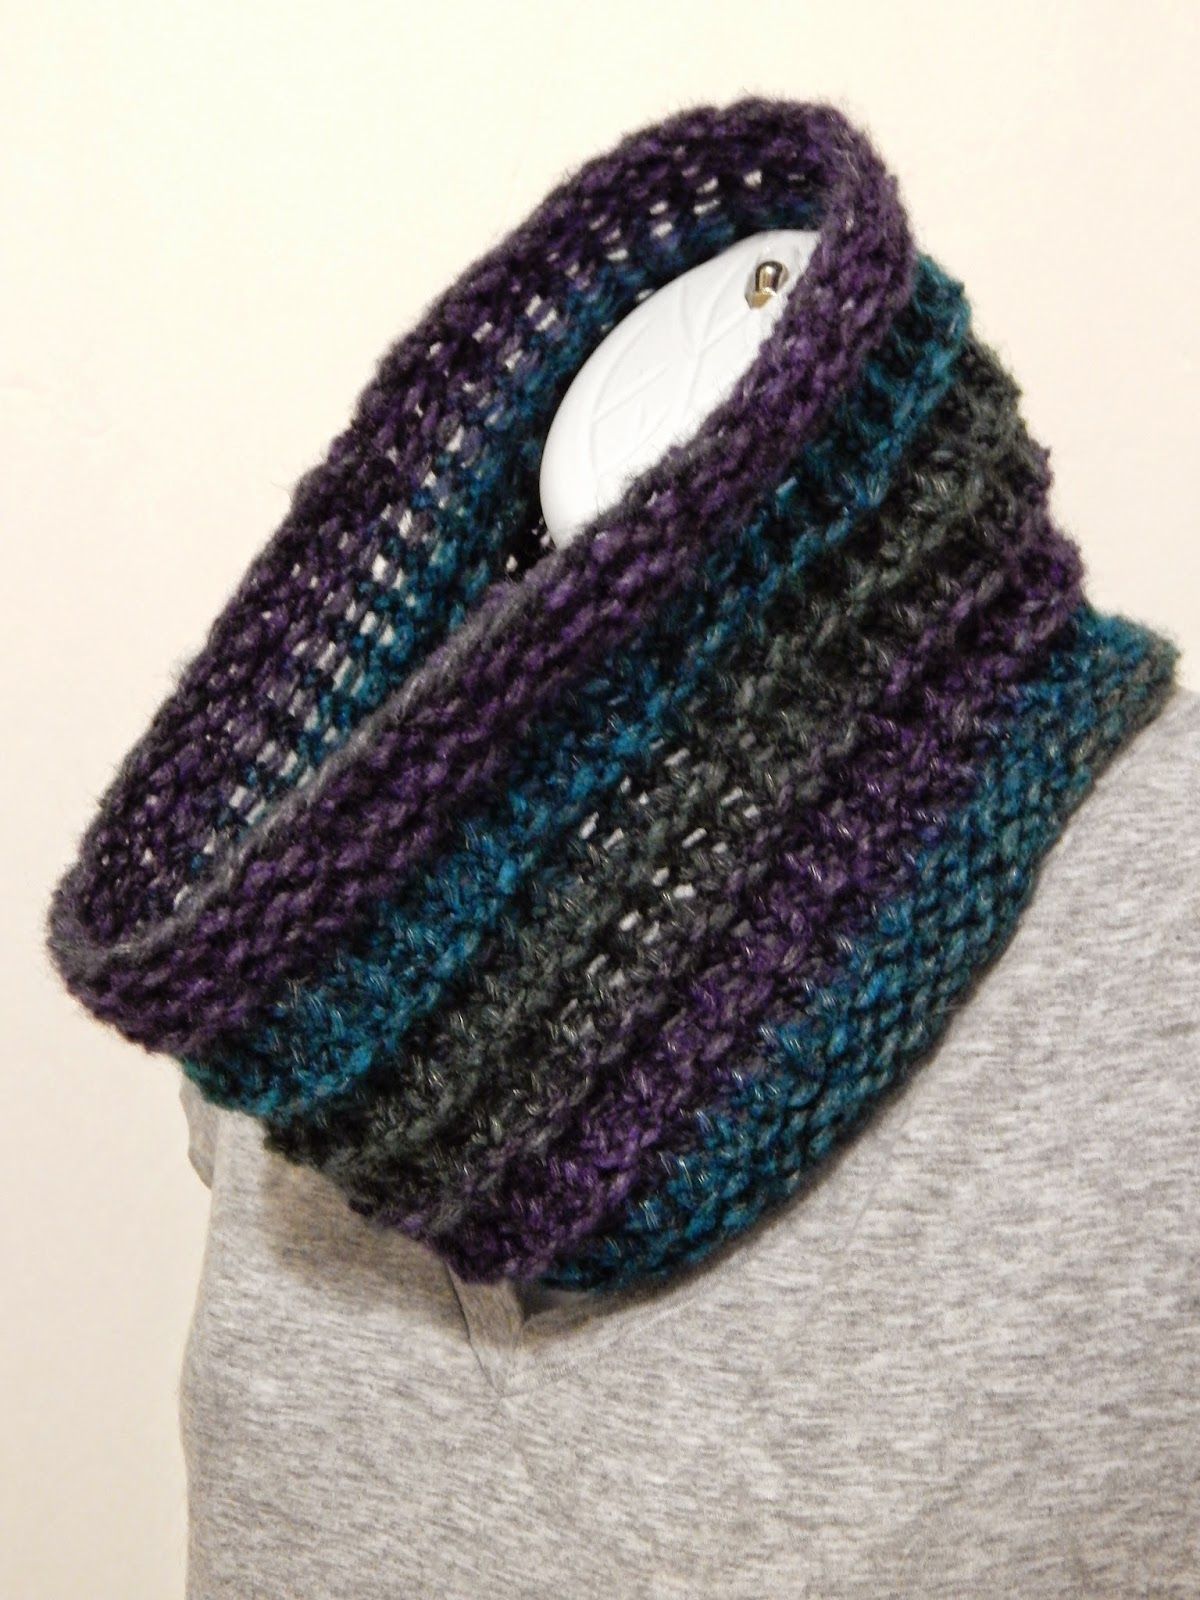 Knit And Purl Stitch On A Loom : Jovial Knits: Loom Knit Cowl: Ridgeway Cowl